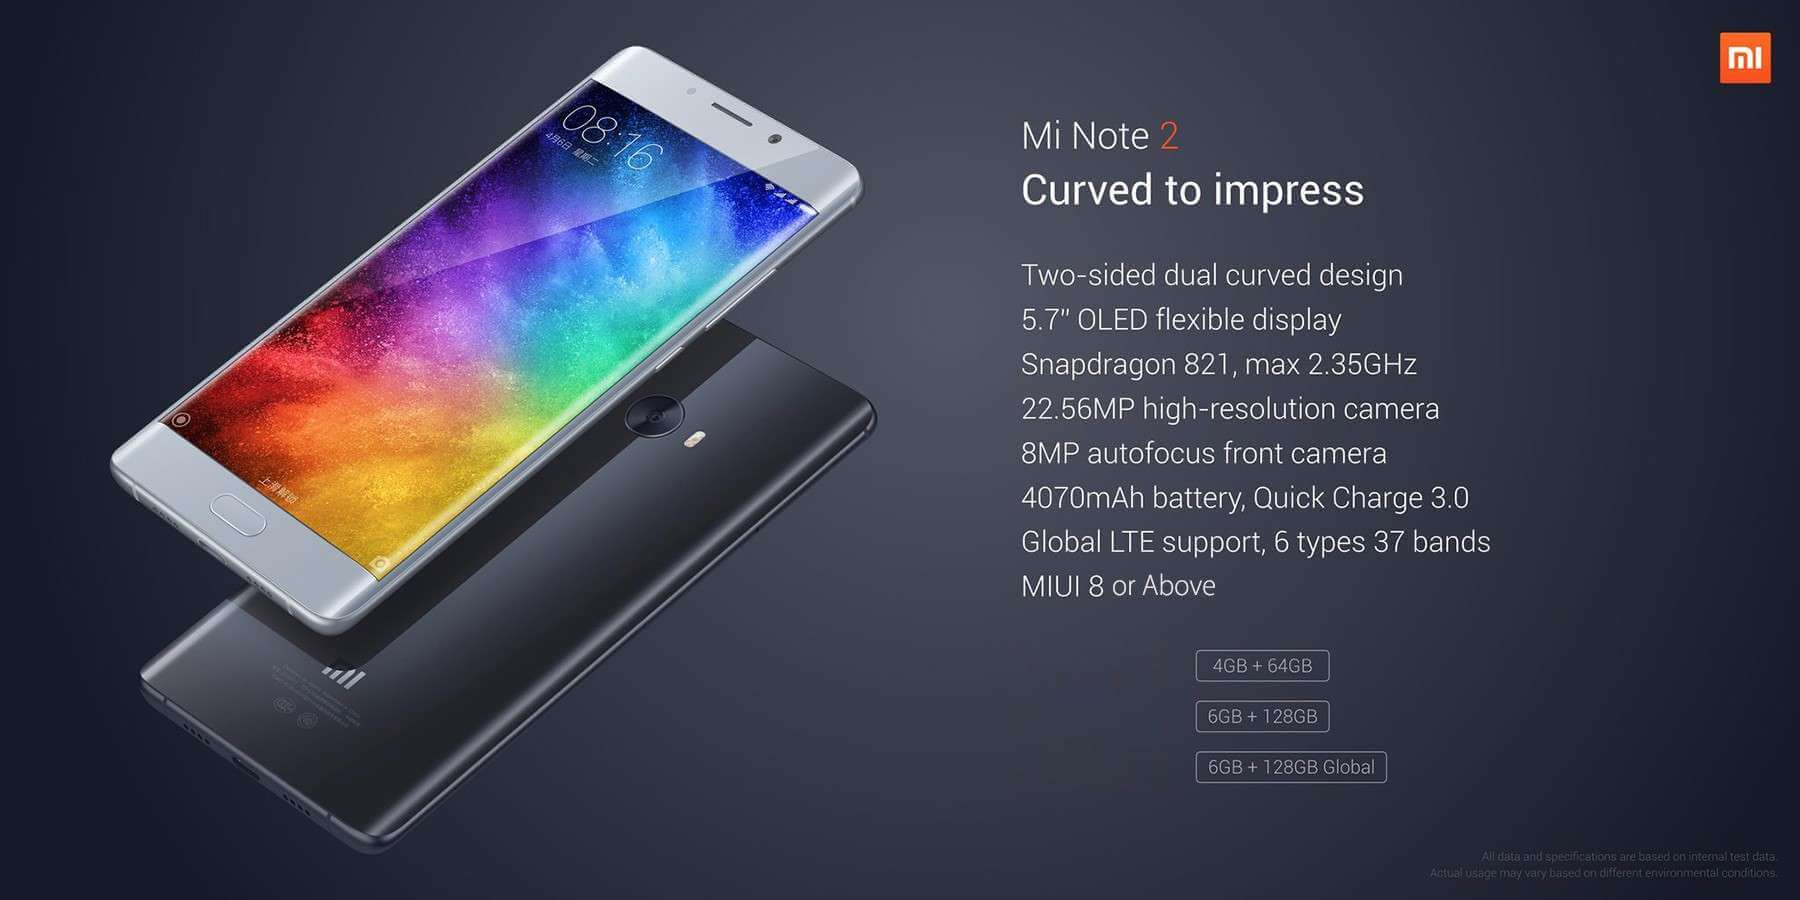 xiaomi-mi-note-2-4g-phablet-features